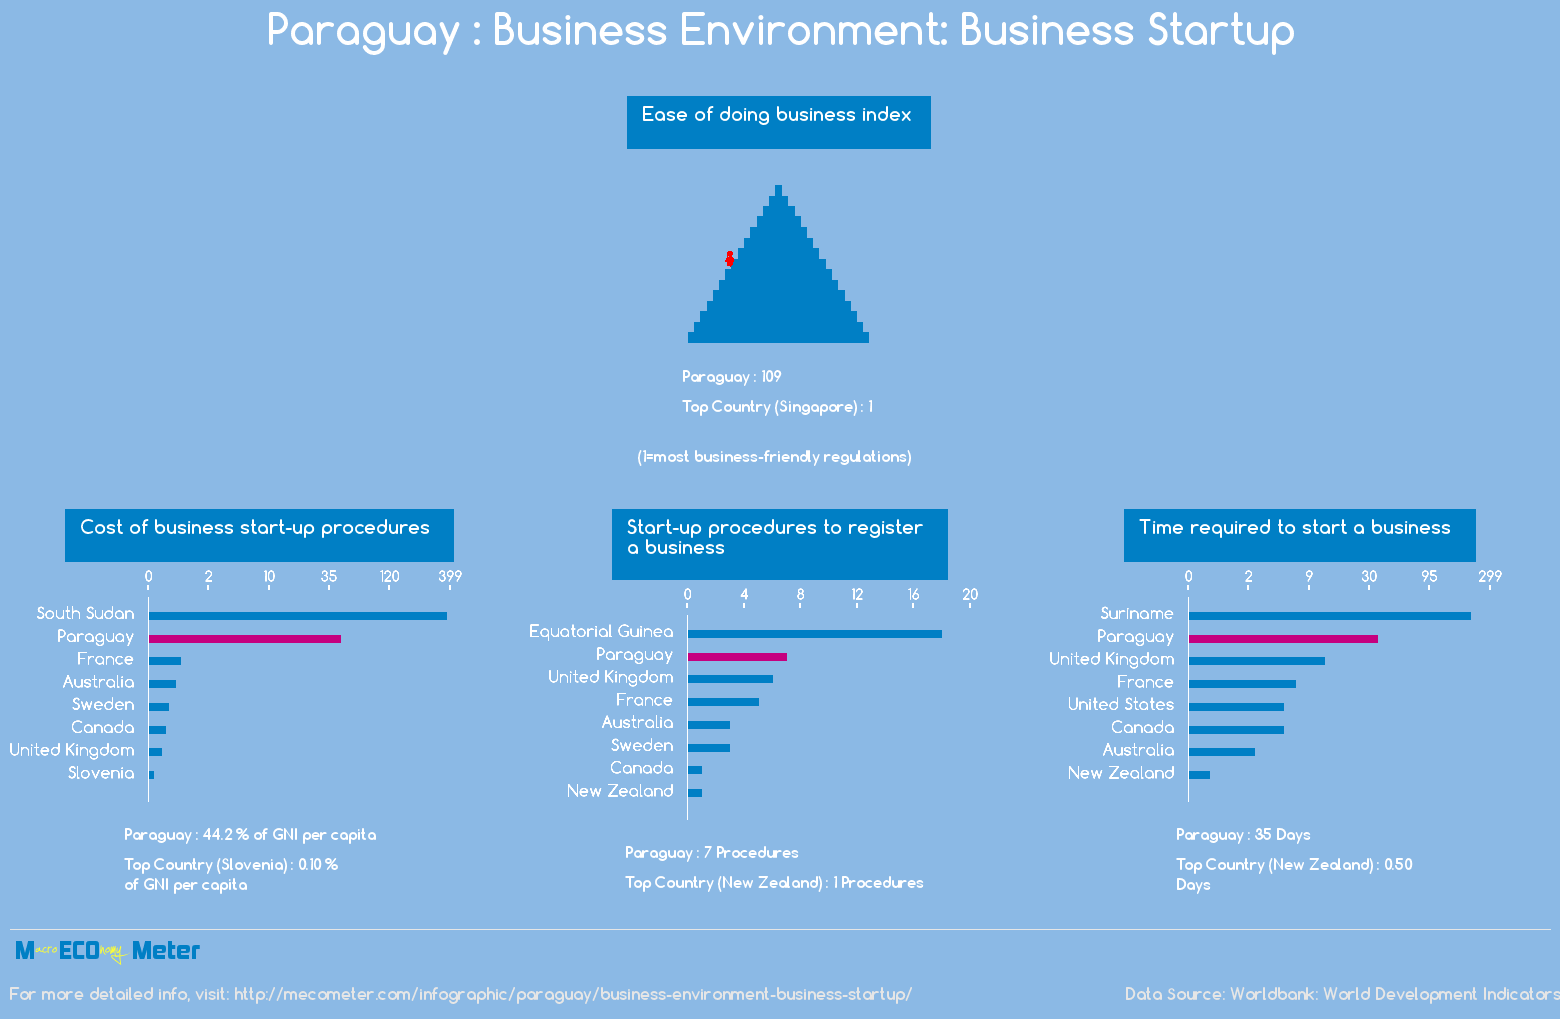 Paraguay : Business Environment: Business Startup